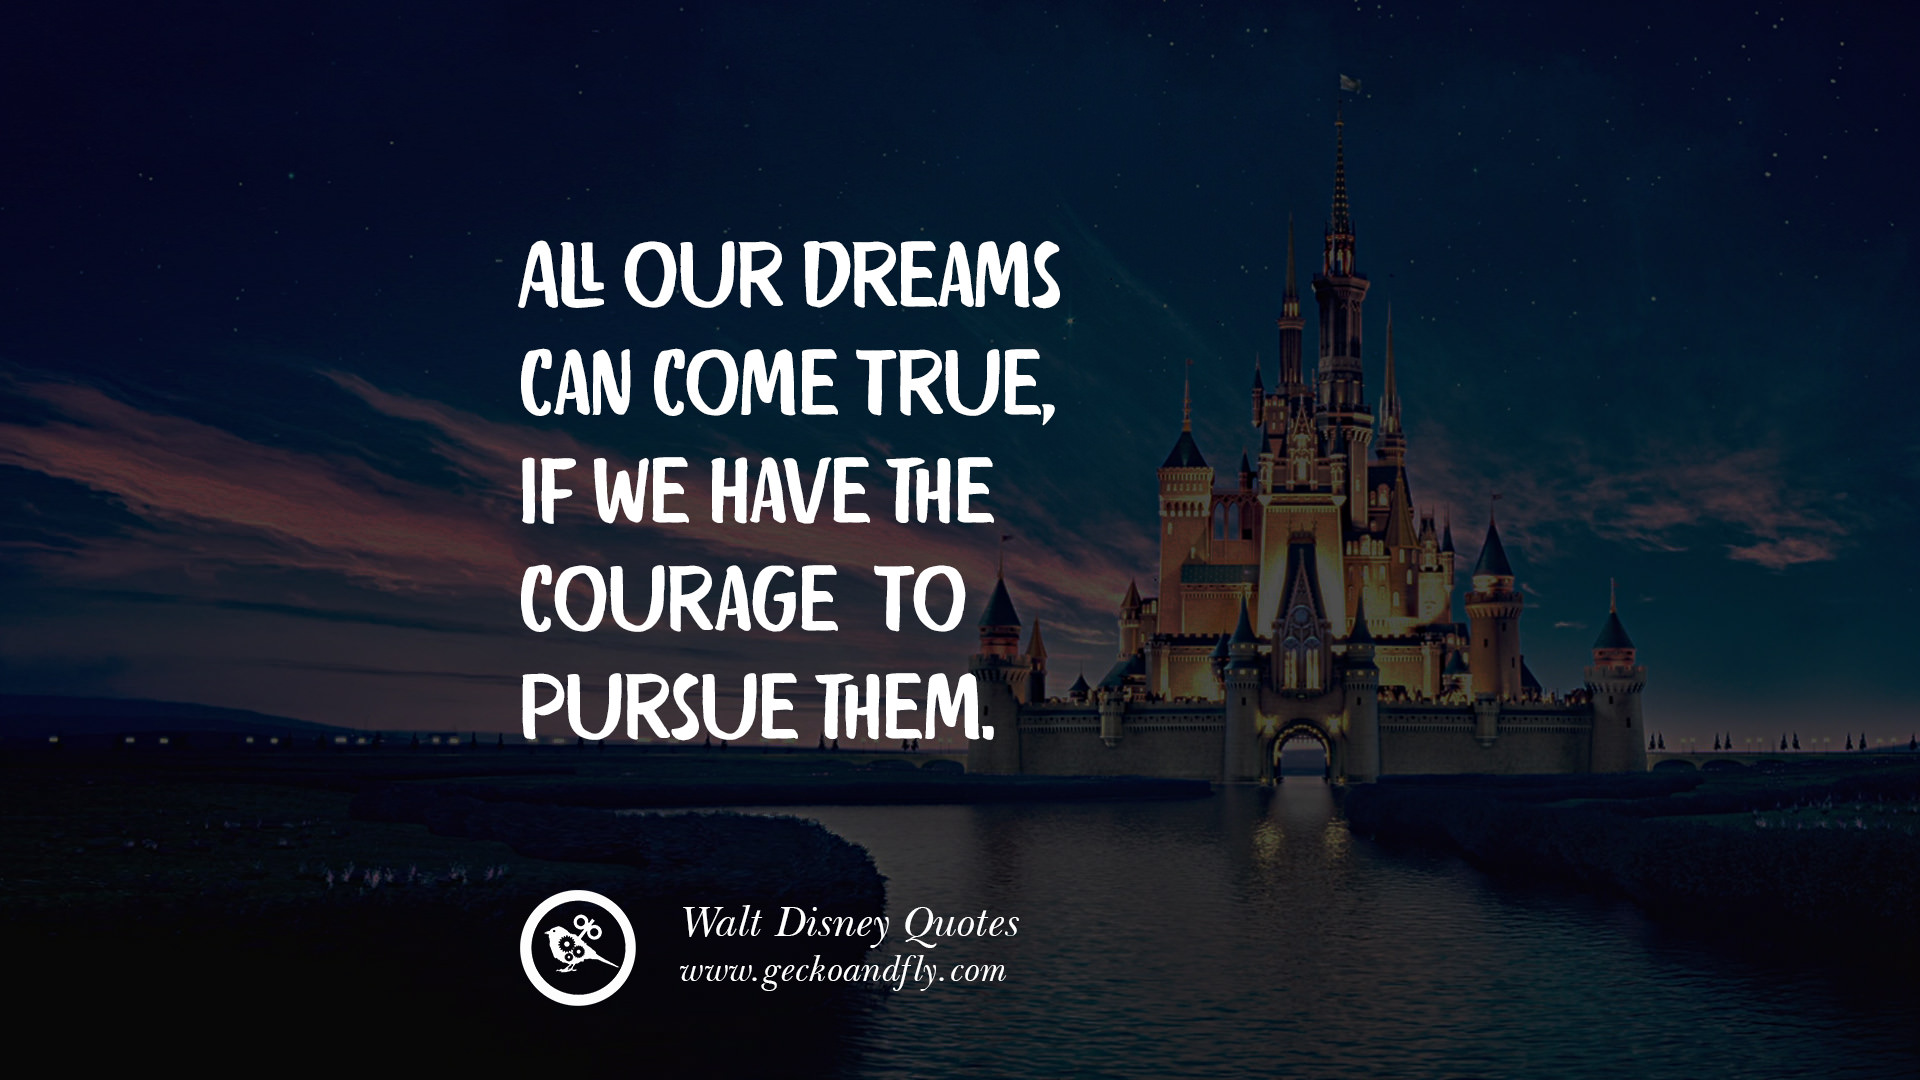 12  Keep Moving Forward  Walt Disney Quotes All our dreams can come true  if we have the courage to pursue them